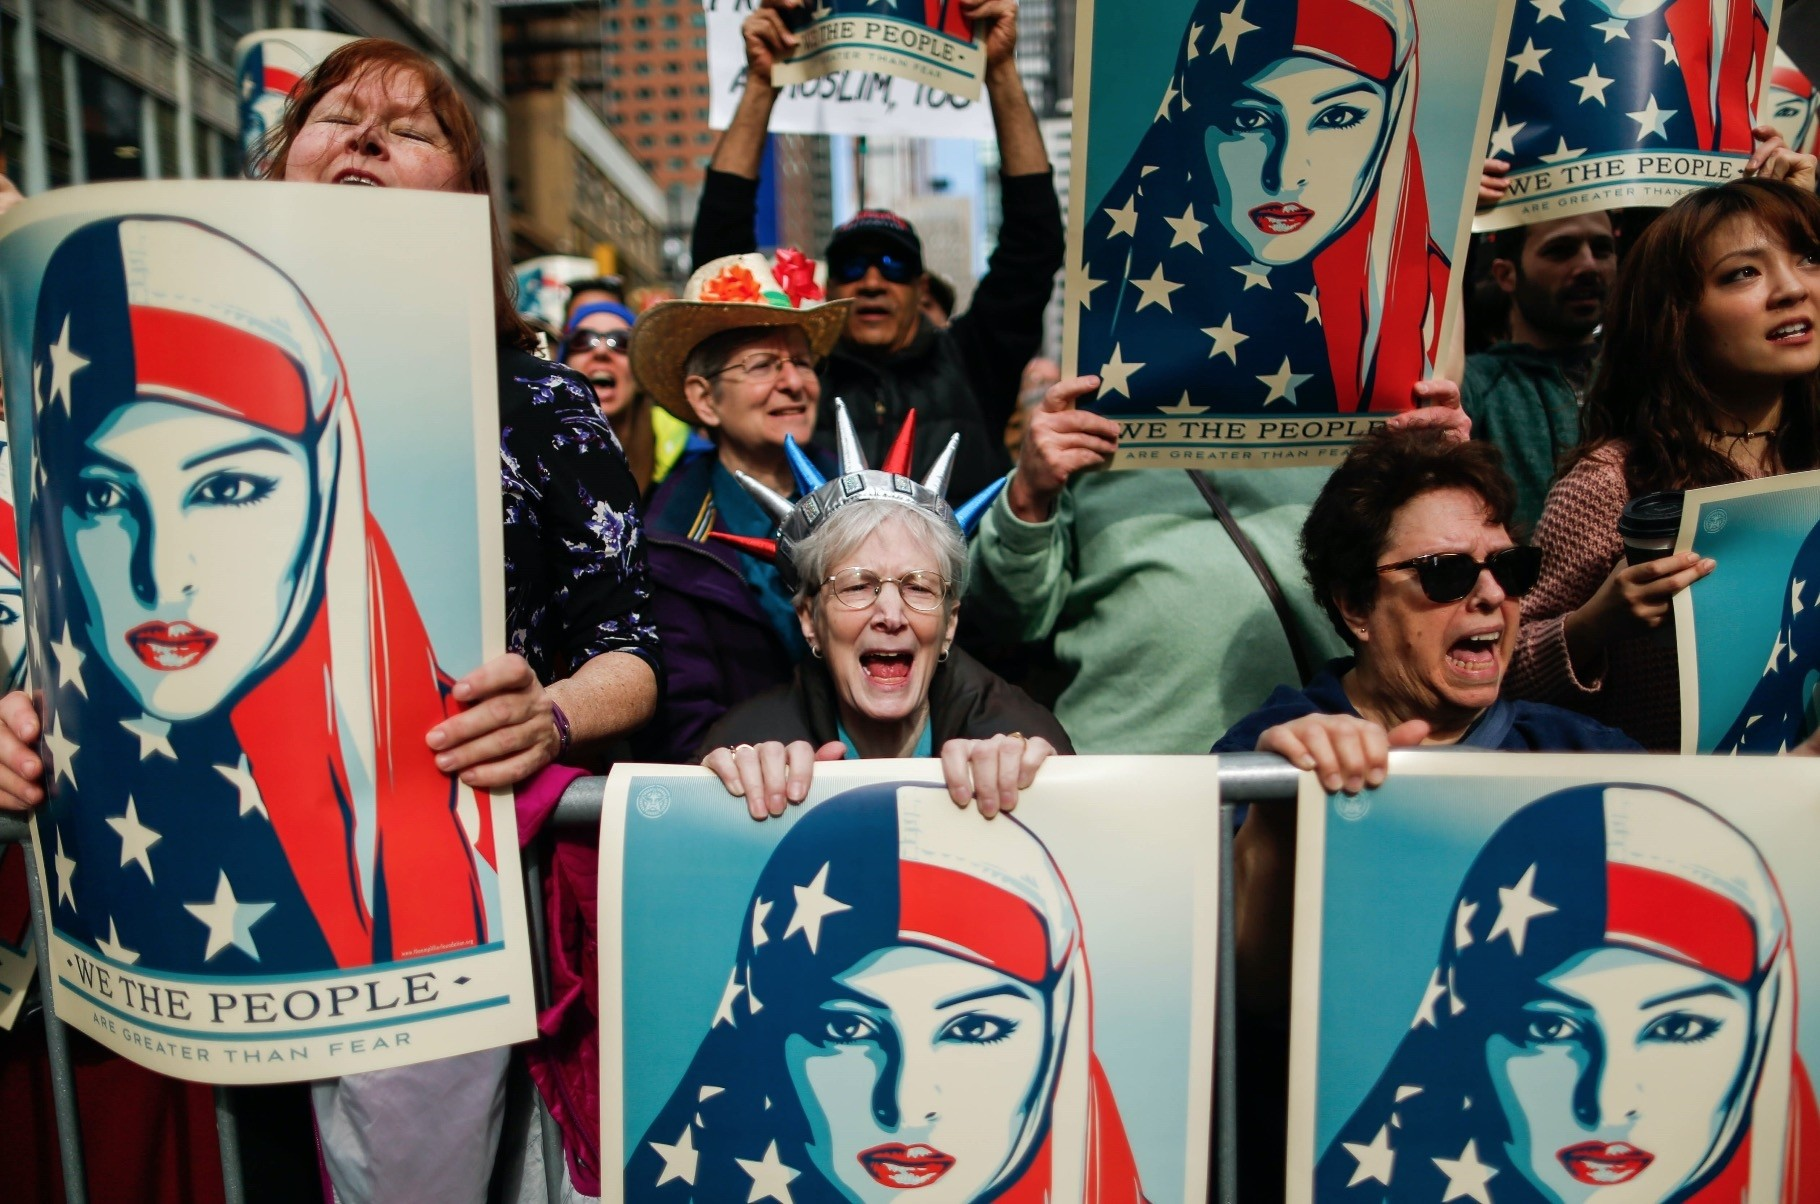 People take part in a rally to show solidarity with Muslim women, New York City, Feb. 19, 2017.